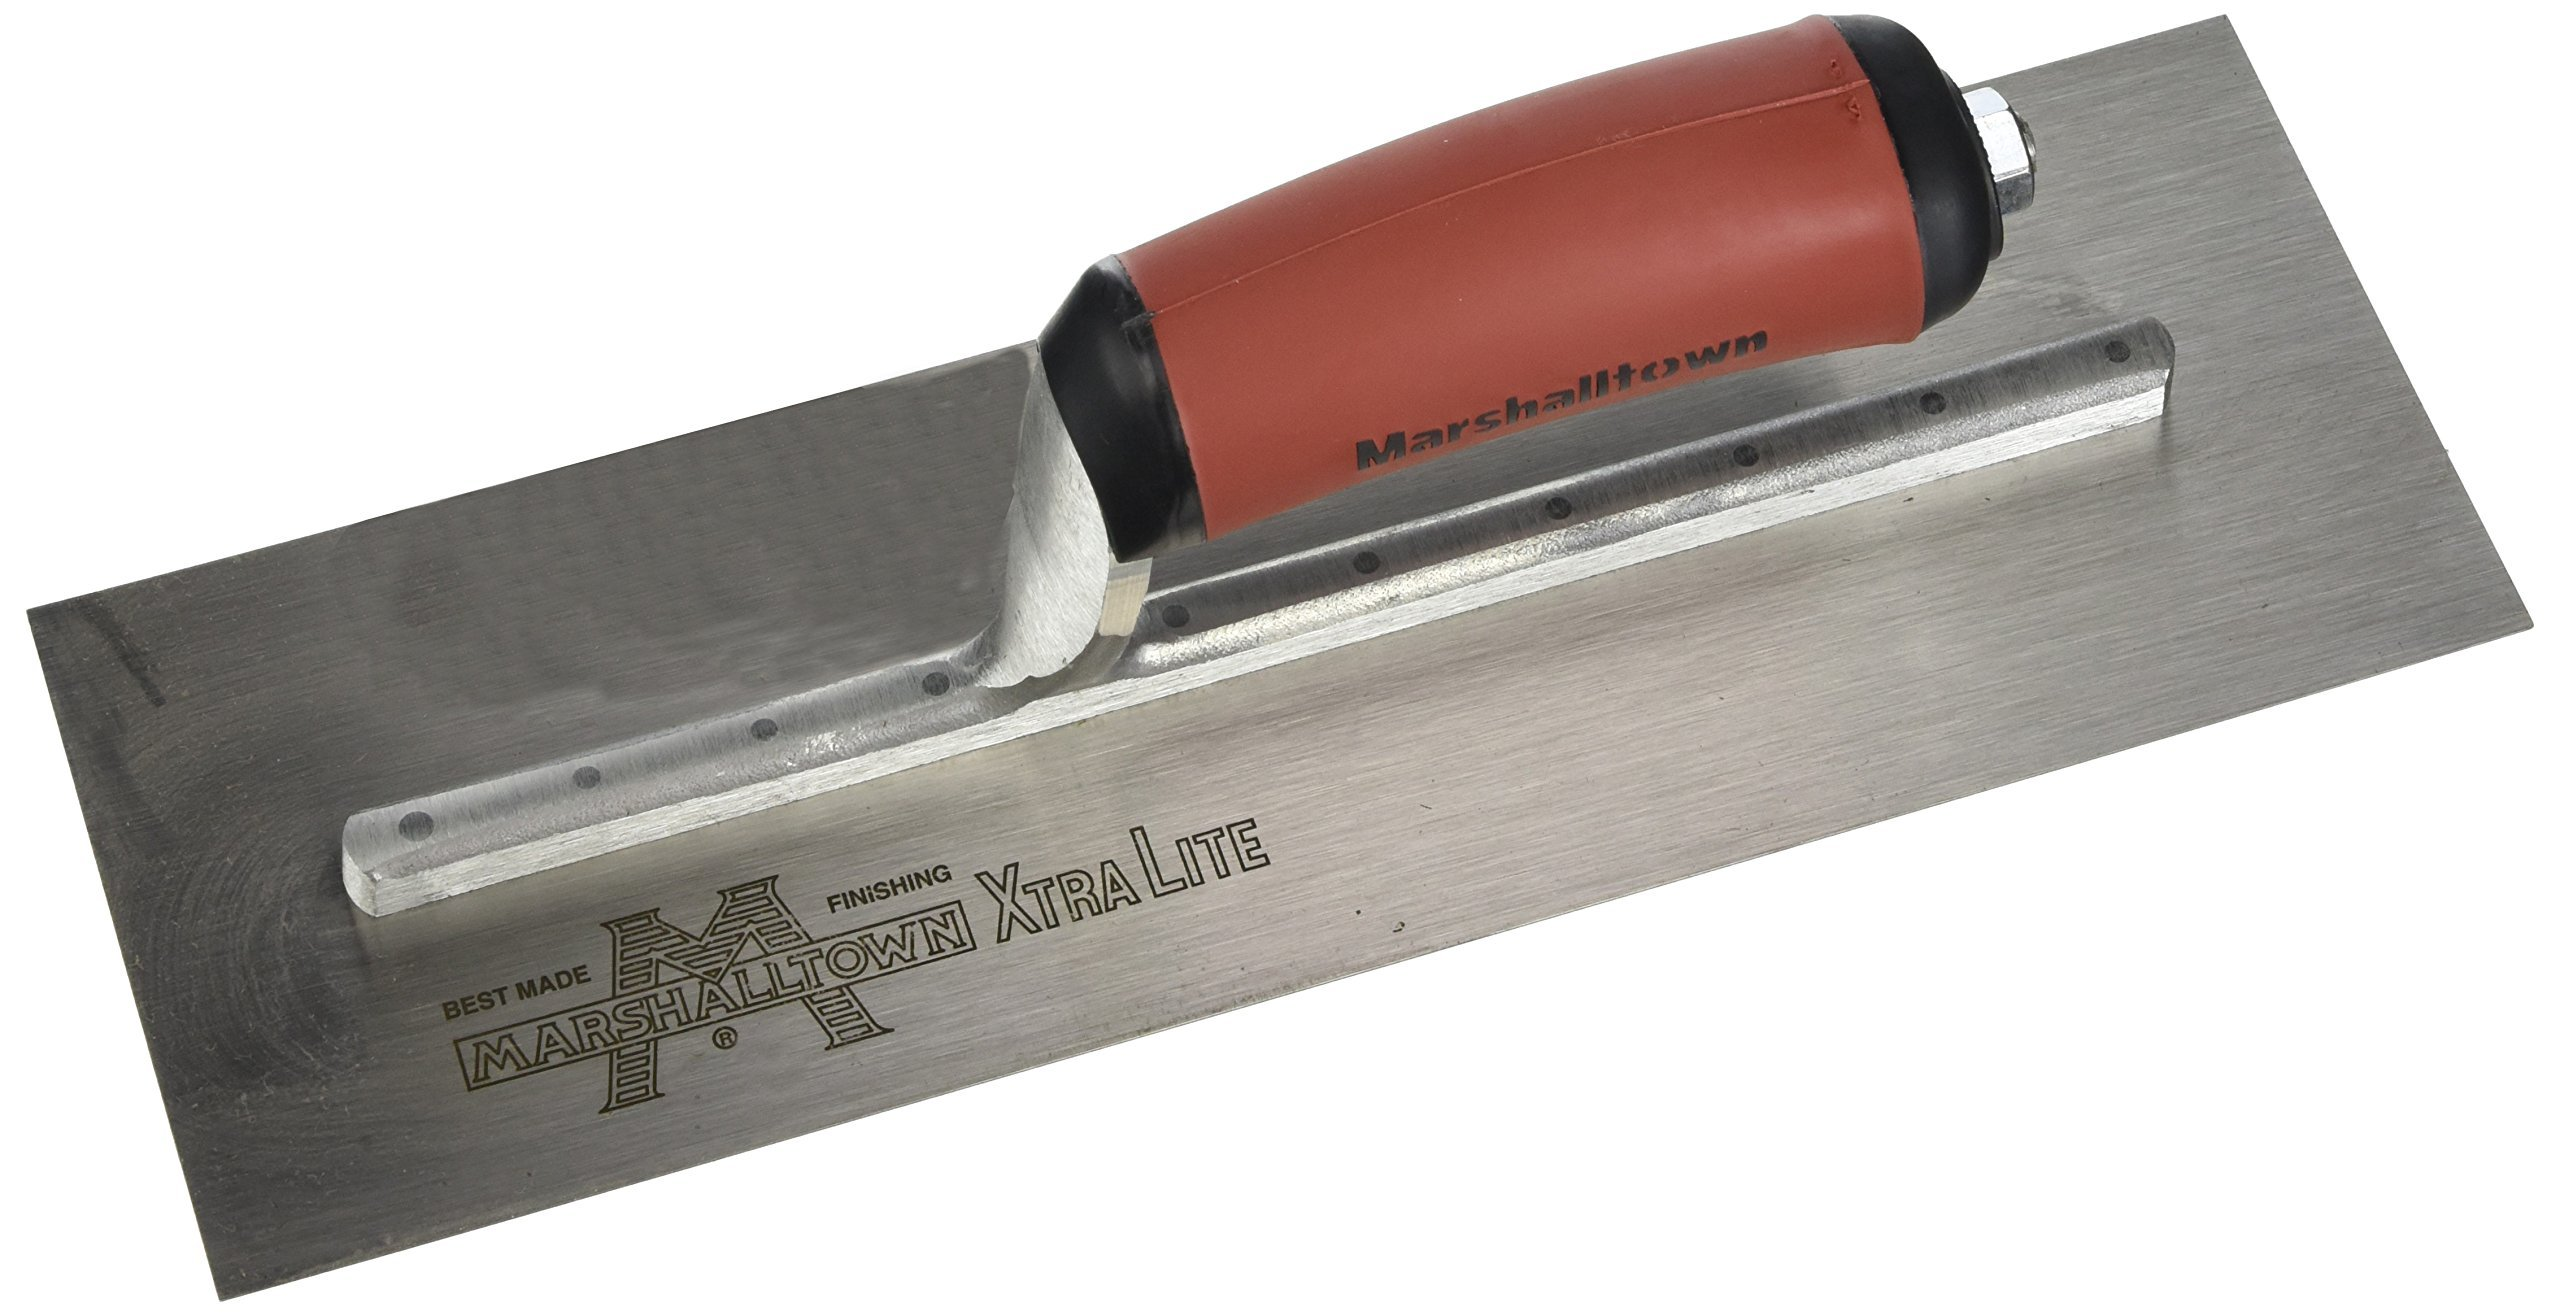 MARSHALLTOWN The Premier Line MXS62D 12-Inch by 4-Inch Finishing Trowel with Curved DuraSoft Handle